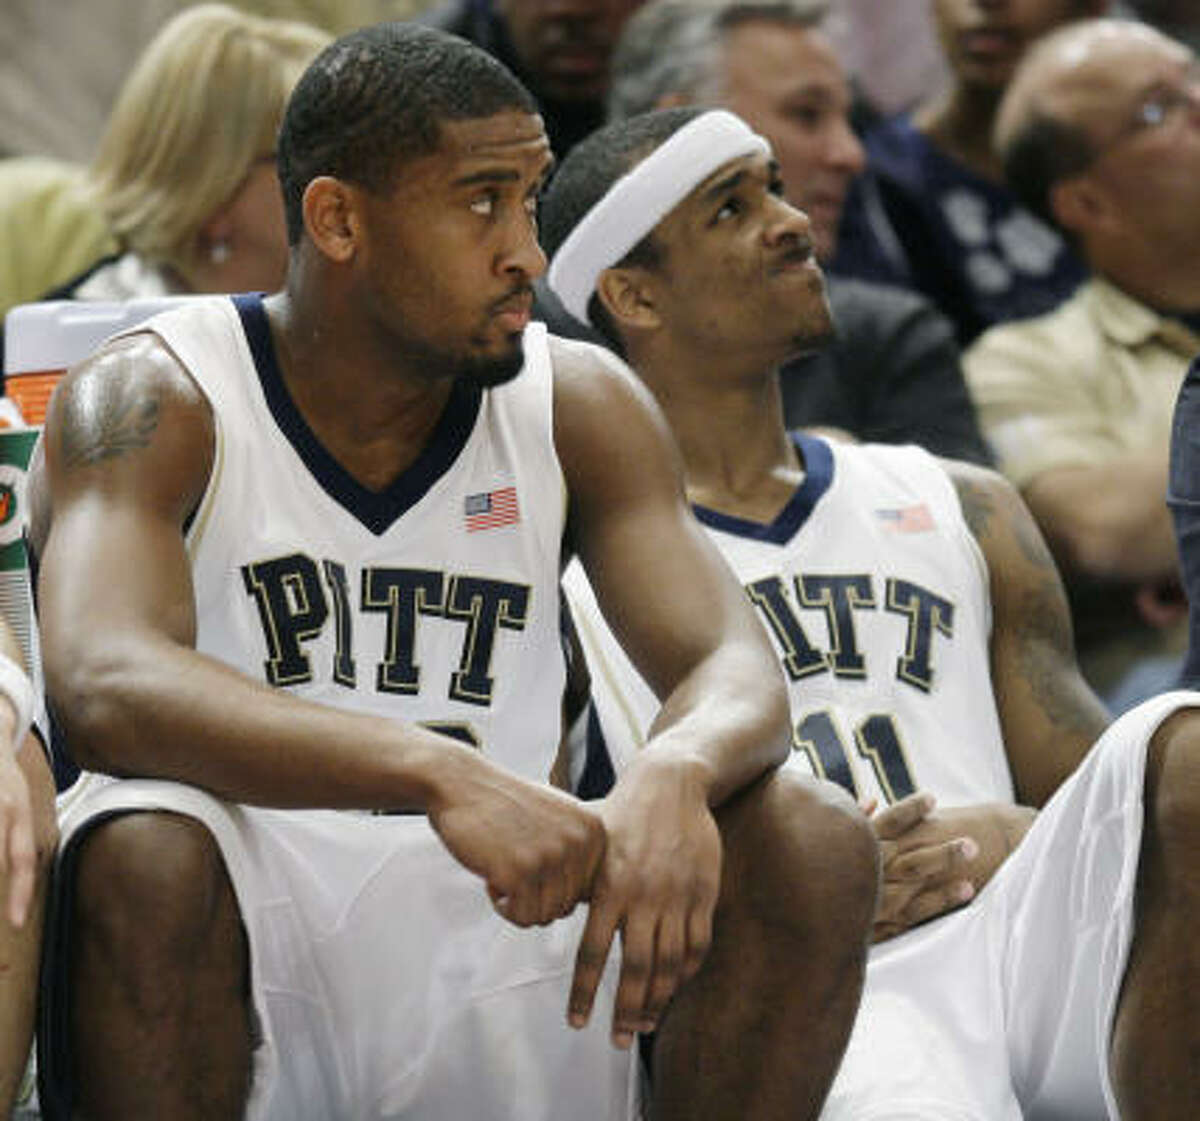 Team: Pittsburgh (28-4) Conference: Big East